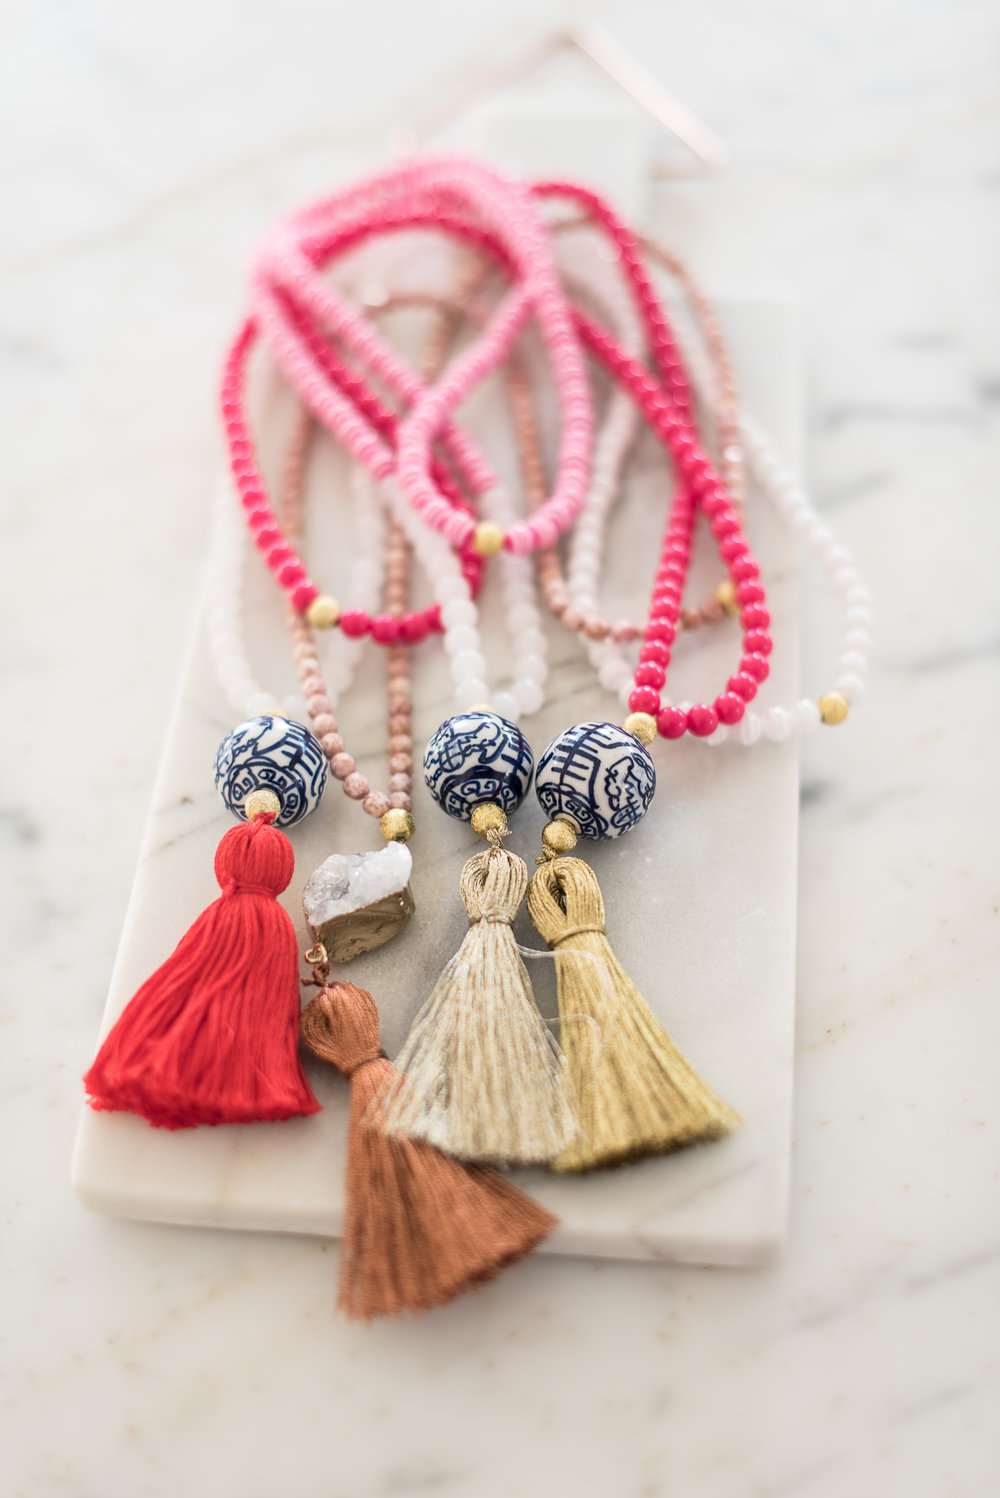 Pink tassel necklaces from The Tiny Tassel  //  designed by Liz Martin on Charleston Weekend  //  on A Lowcountry Wedding Magazine